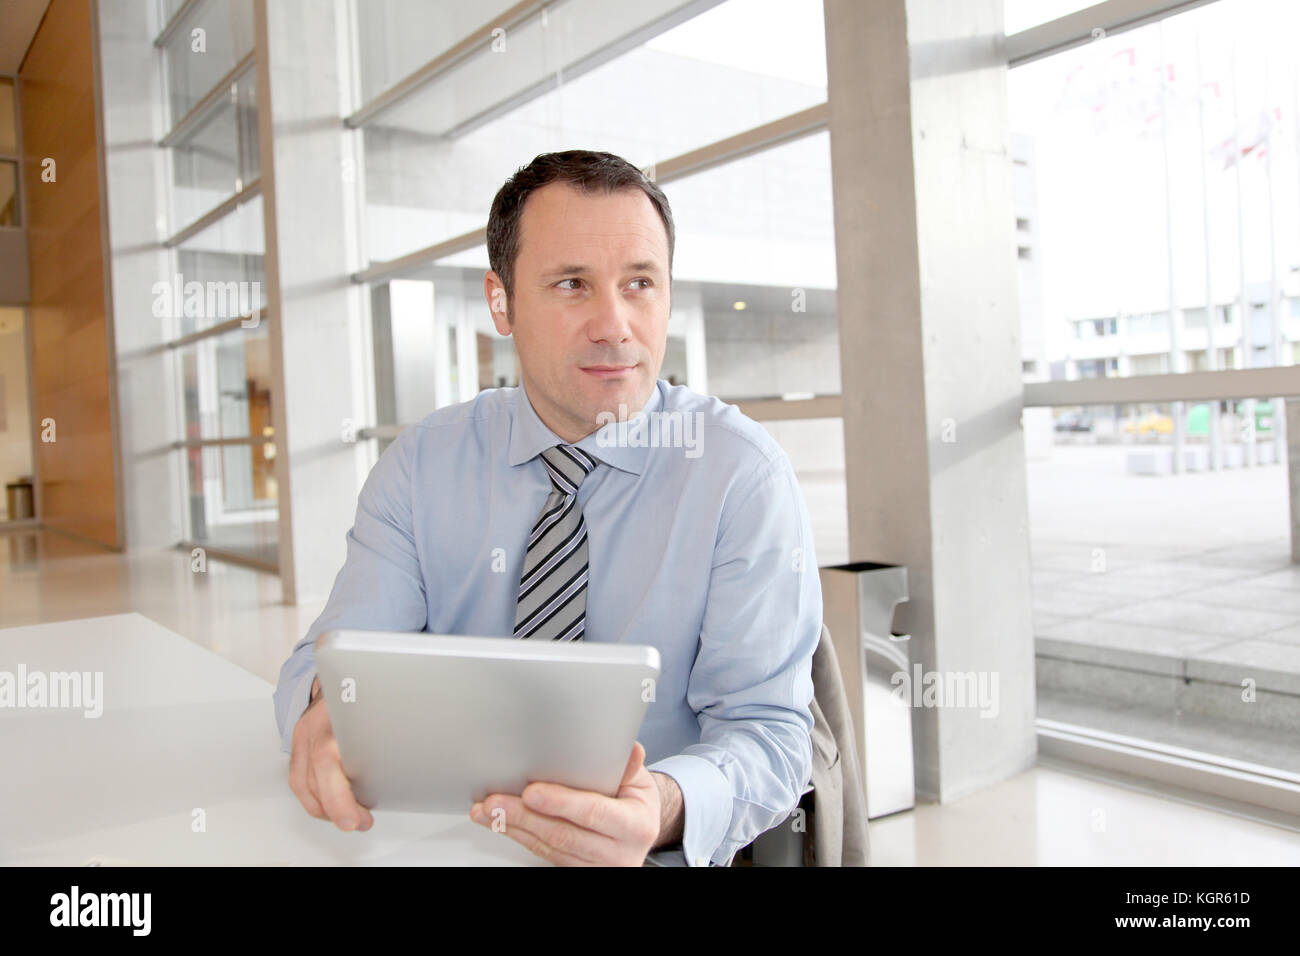 Businessman sitting in the office with electronic tablet - Stock Image